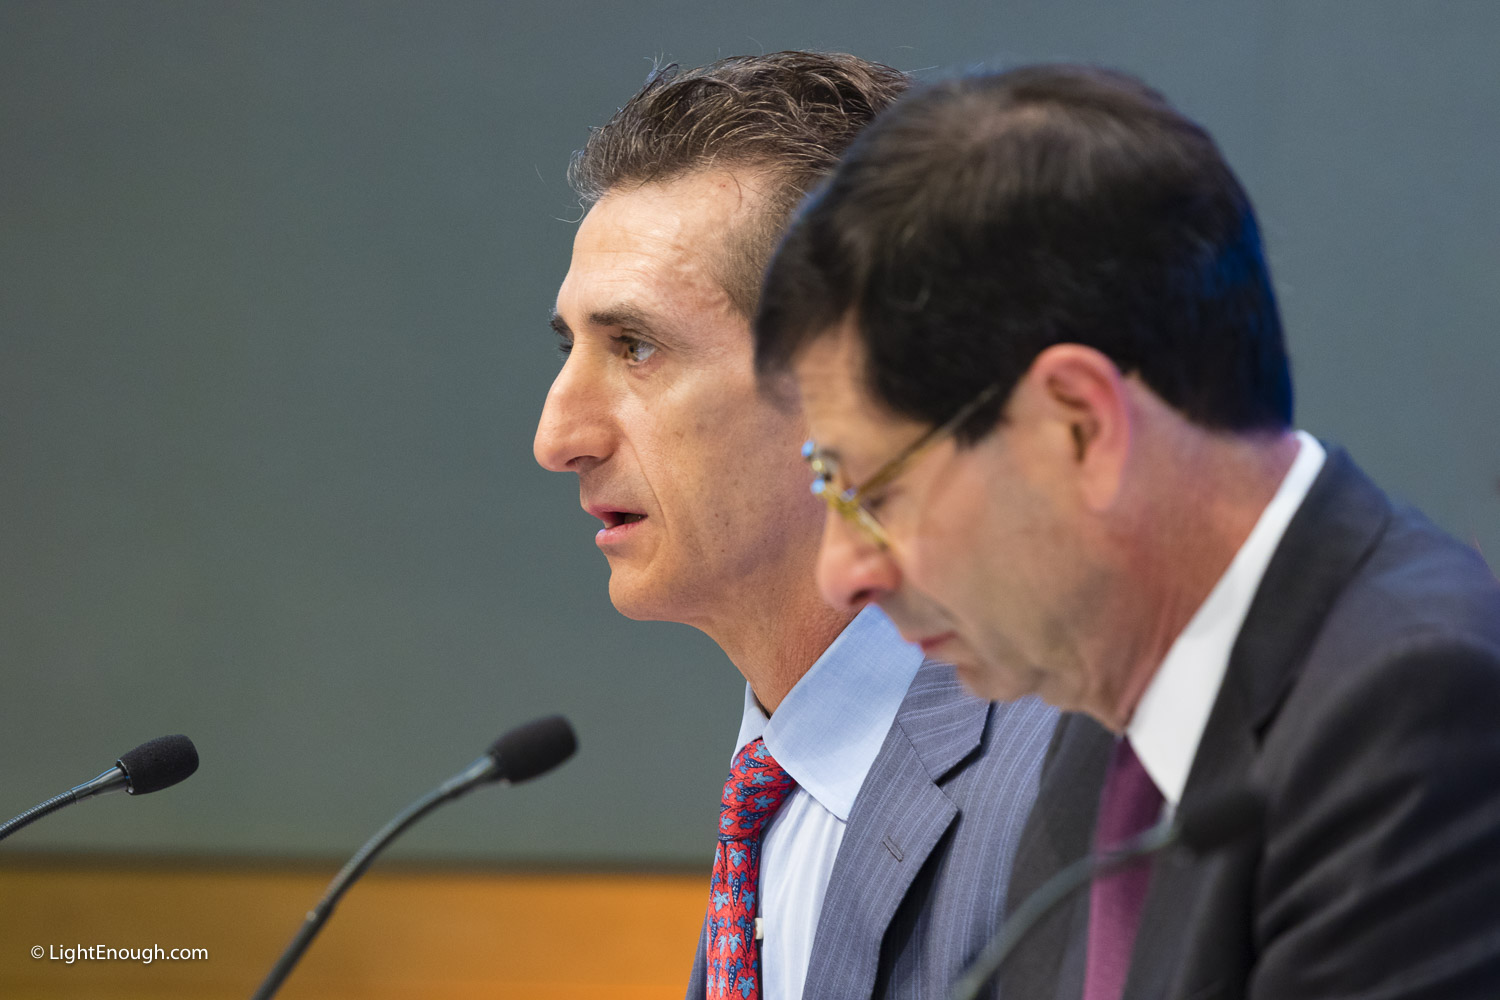 L-R: IMF Deputy Director Gian Maria Milesi-Ferretti, and Economic Counsellor Maurice Obstfeld at the World Economic Outlook Press Conference at IMF headquarters in  Washington, DC on October 4, 2016. Photo by John St Hilaire / LightEnough.com